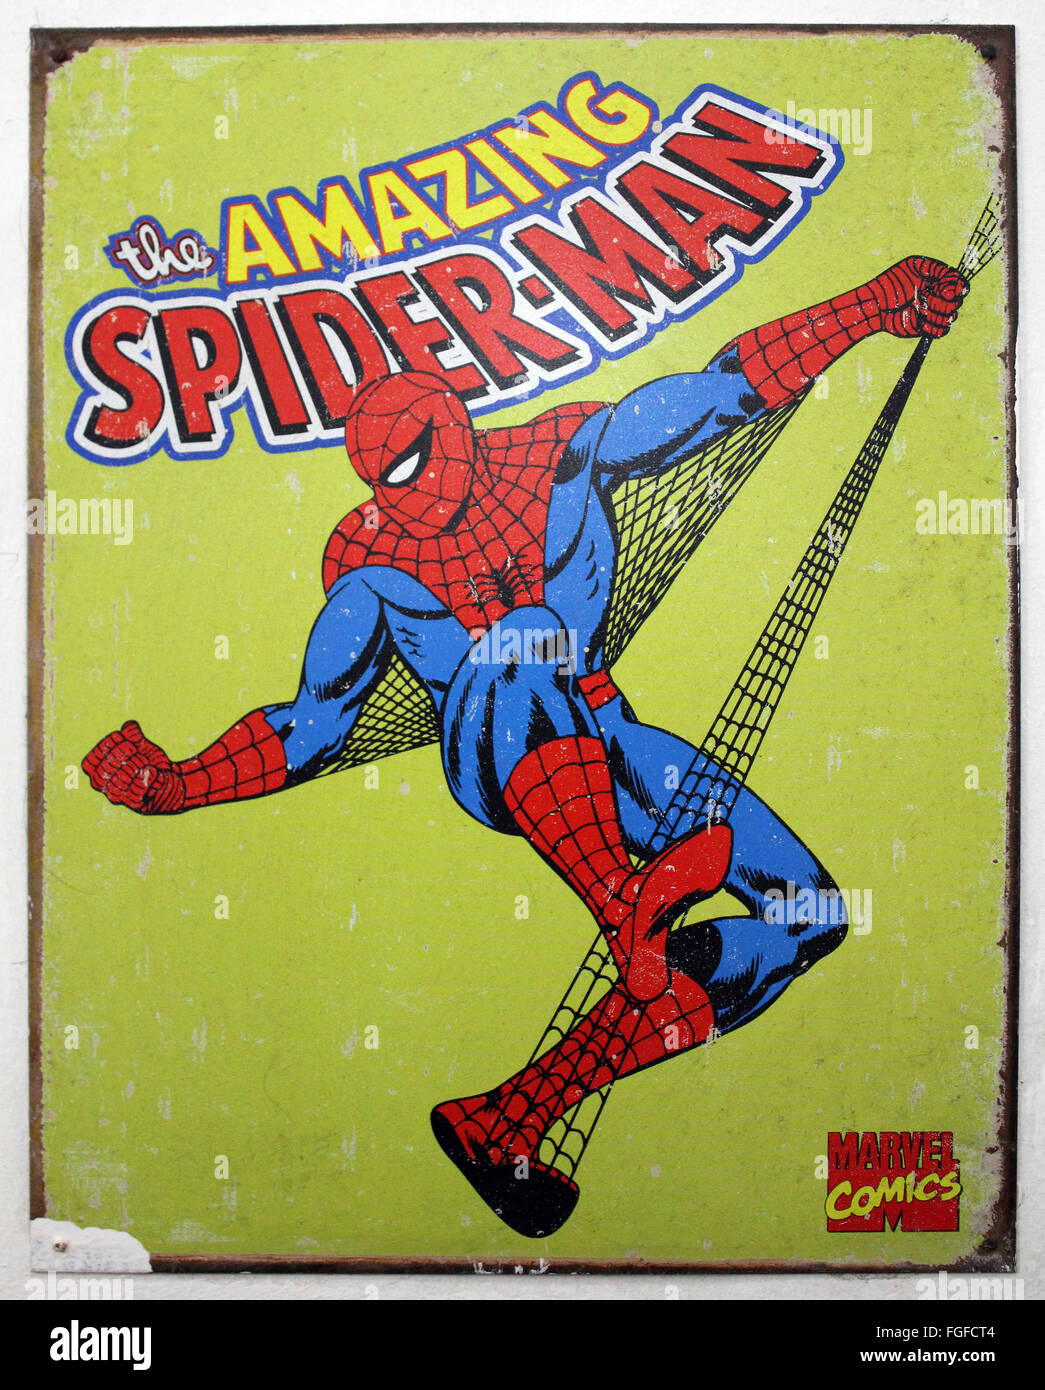 Spider Man Original Wall Plaque - Stock Image